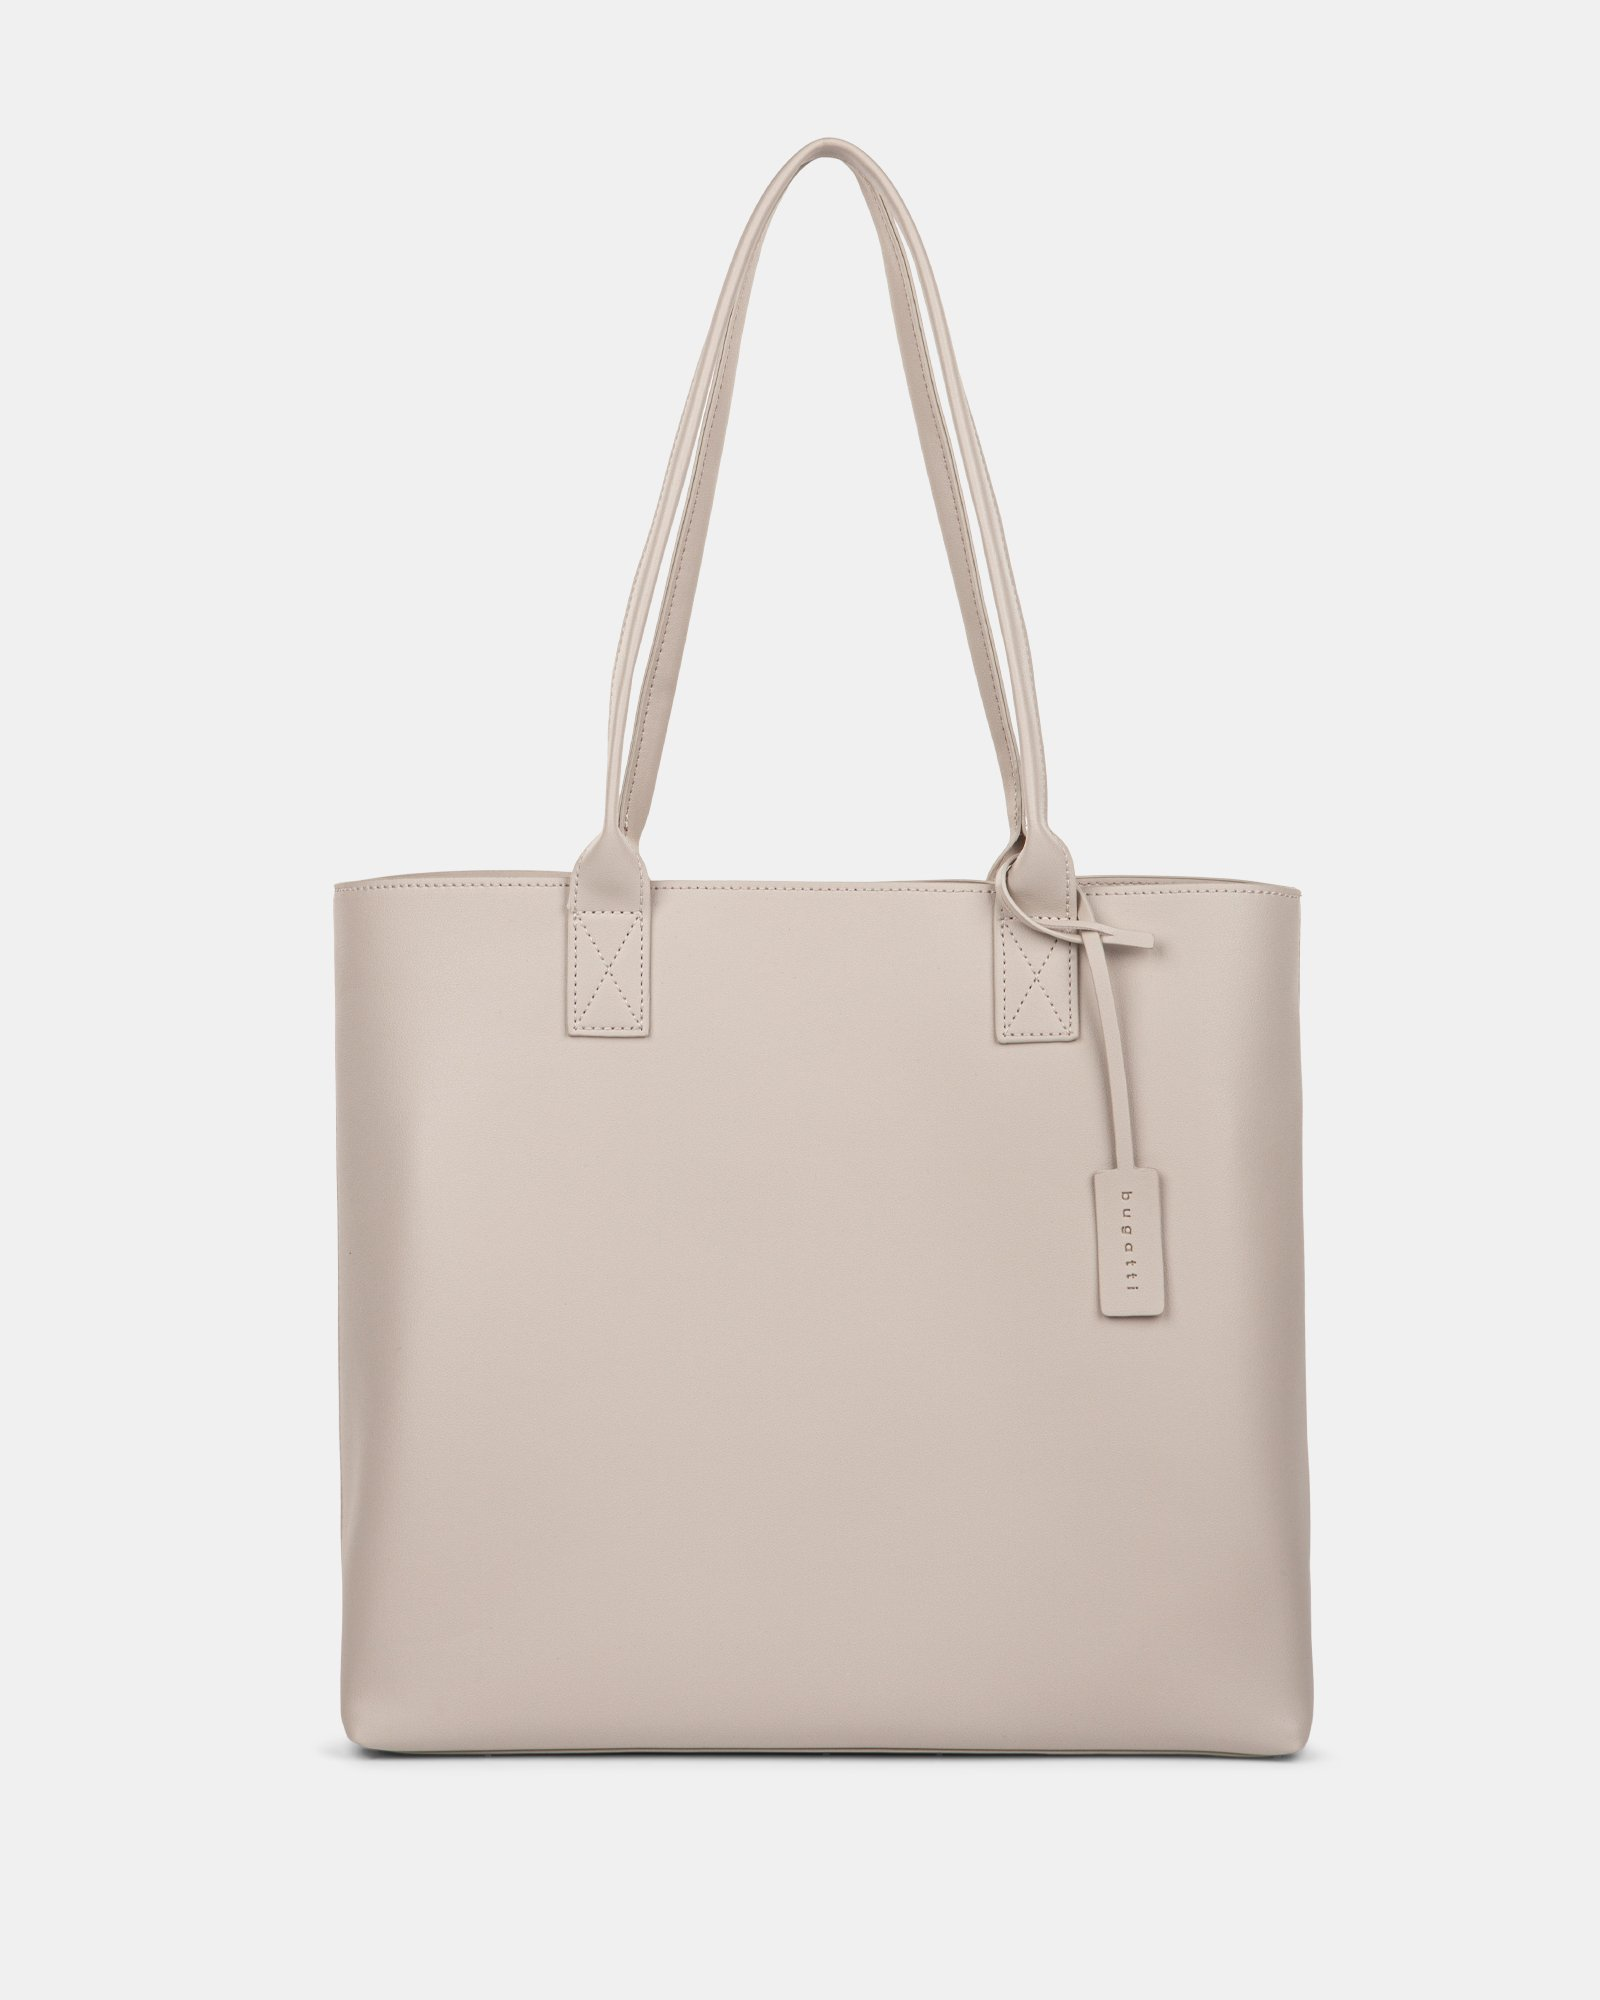 """PURE - VEGAN LEATHER BUSINESS TOTE BAG for 14"""" laptops or tablet - CREAM - Bugatti - Zoom"""